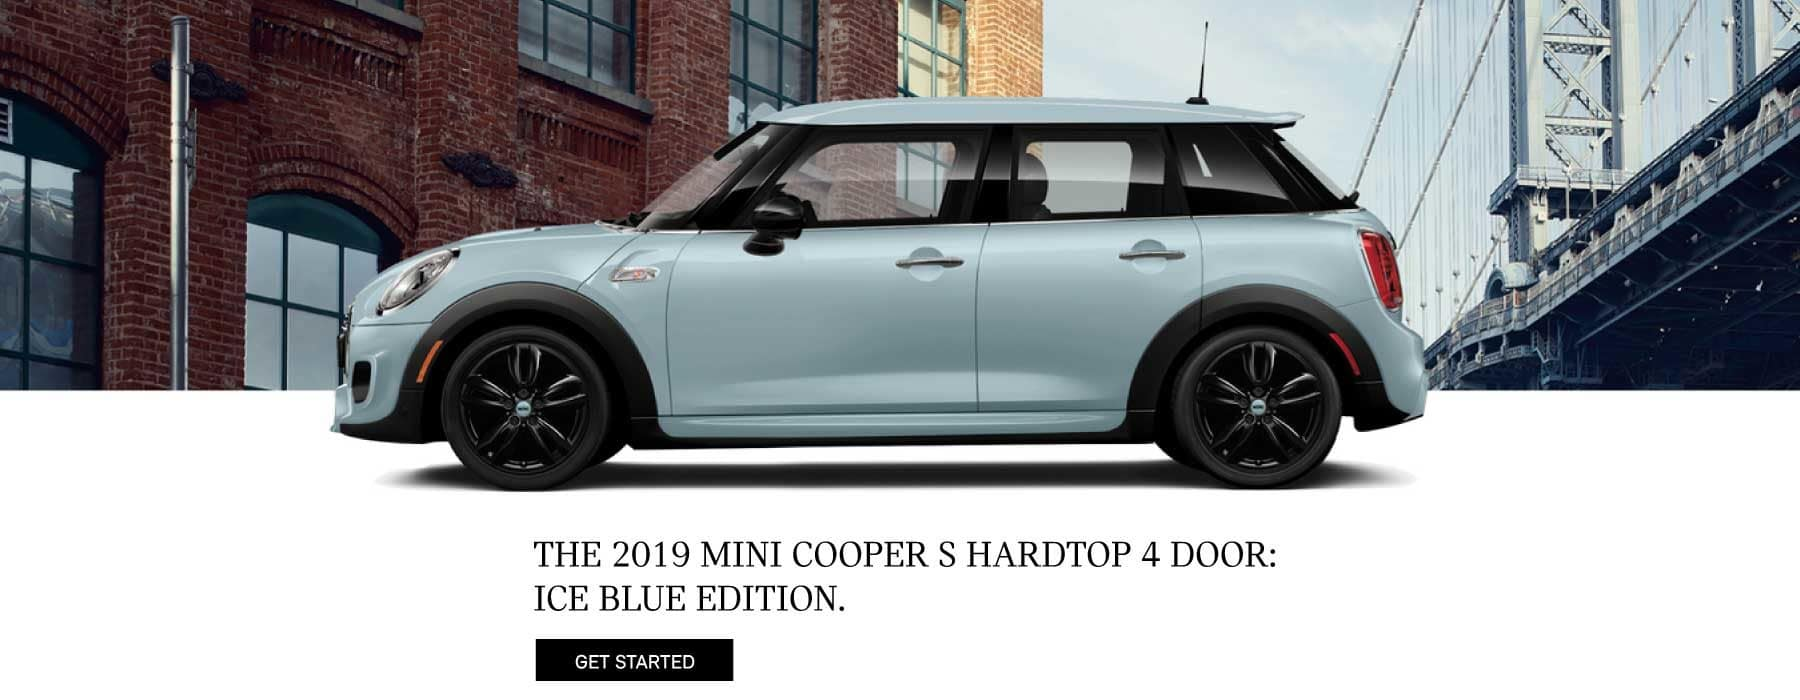 Mini Of Allentown Mini And Used Car Dealer In Allentown Pa